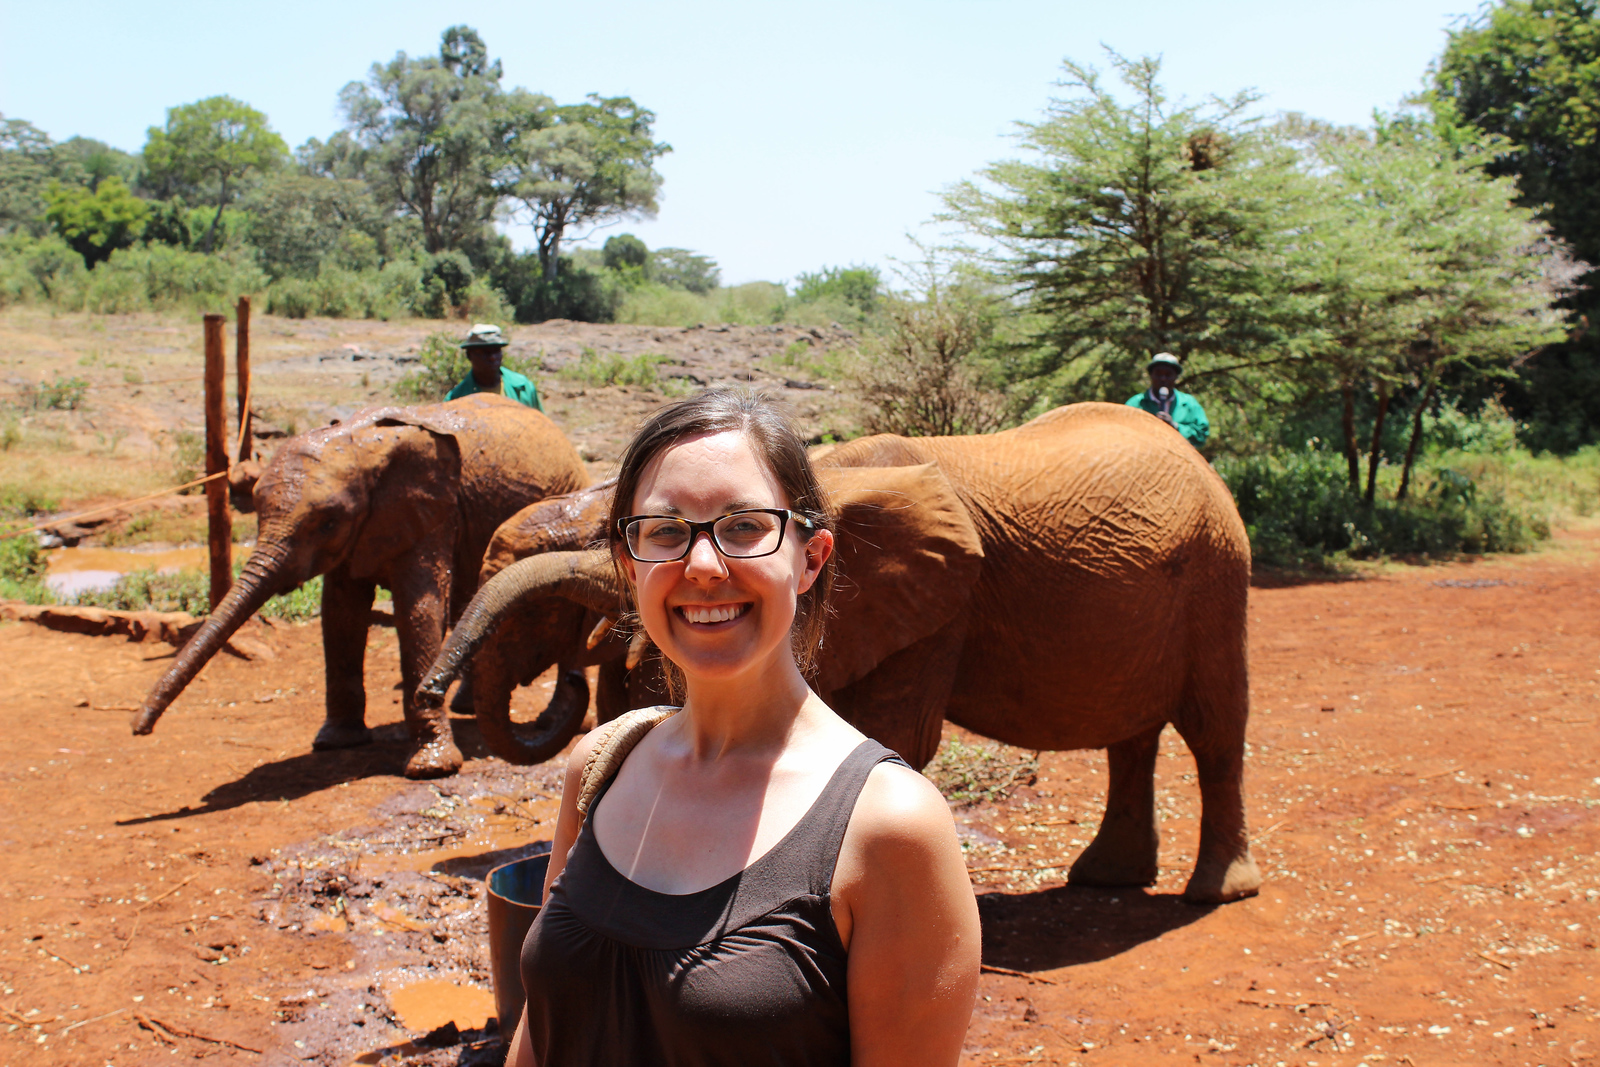 Visiting the Elephant Orphanage Nairobi, Kenya